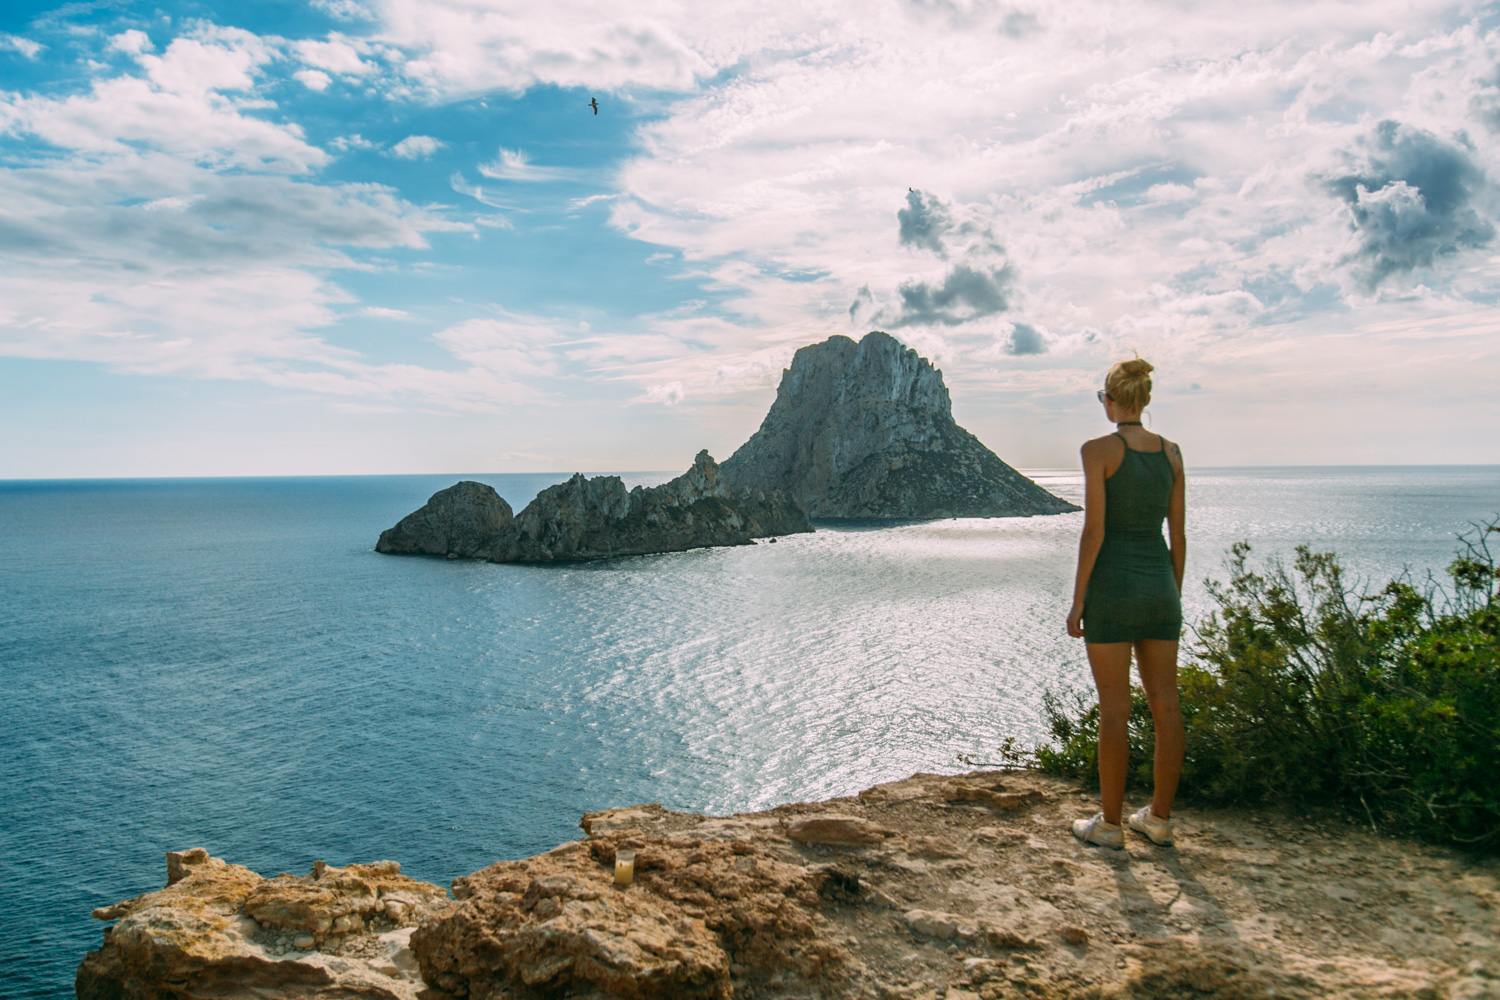 es vedra, ibiza, atlantis, sea nyphms, healing, legends, ufo, rochelle fox, wanderlife, travel tips, Europe, island, party, magnetic field, magnetic (11 of 24)